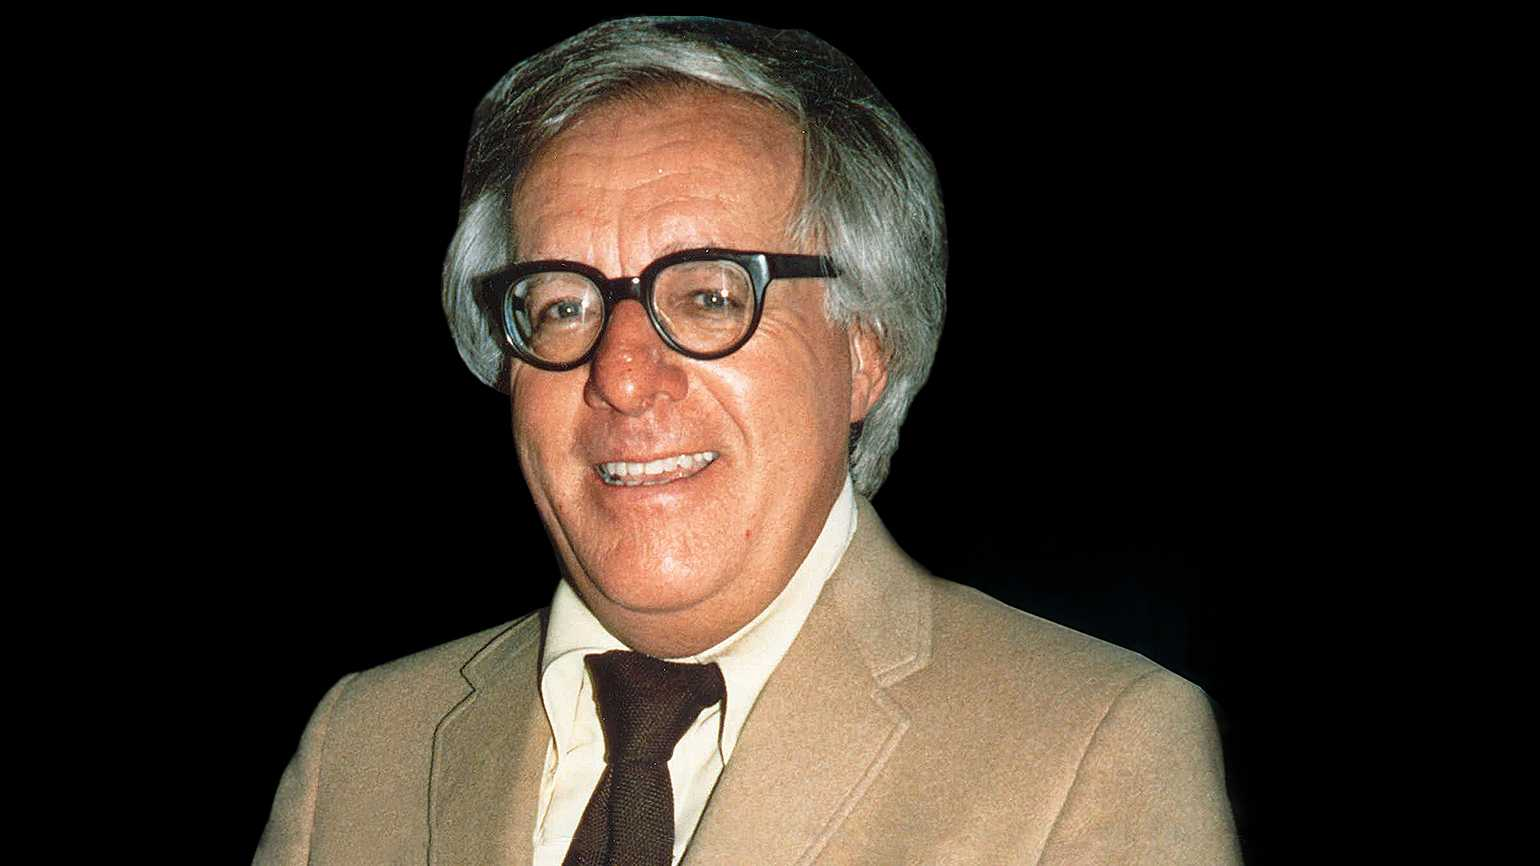 Legendary science fiction author Ray Bradbury